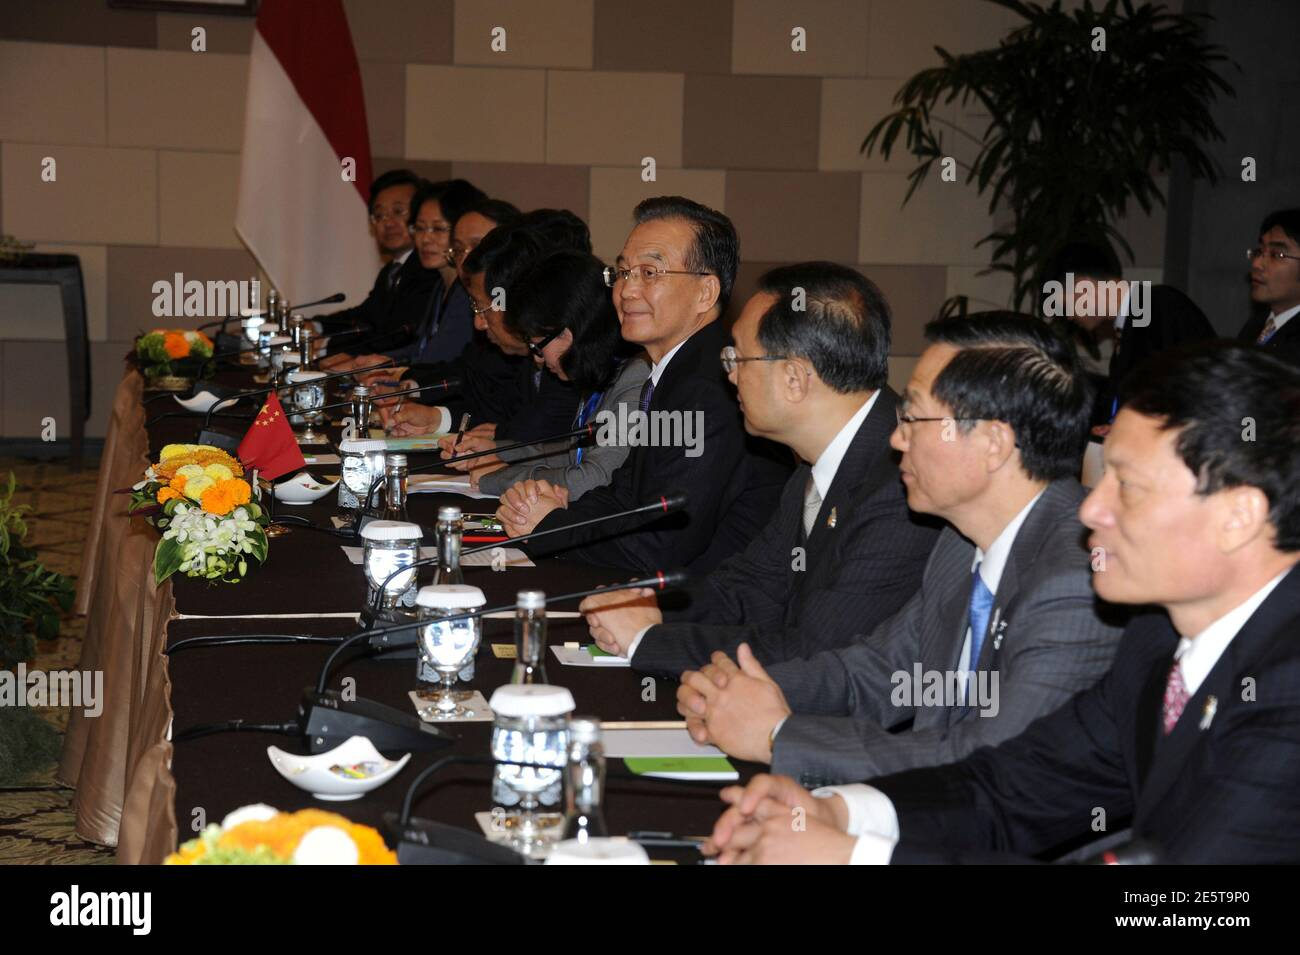 China's Premier Wen Jiabao (C) sits with his delegation during a bilateral talk with Indonesia's President Susilo Bambang Yudhoyono at the side of ASEAN Summit in Nusa Dua, Bali November 17, 2011. REUTERS/Romeo Gacad/Pool  (INDONESIA - Tags: POLITICS) Foto de stock